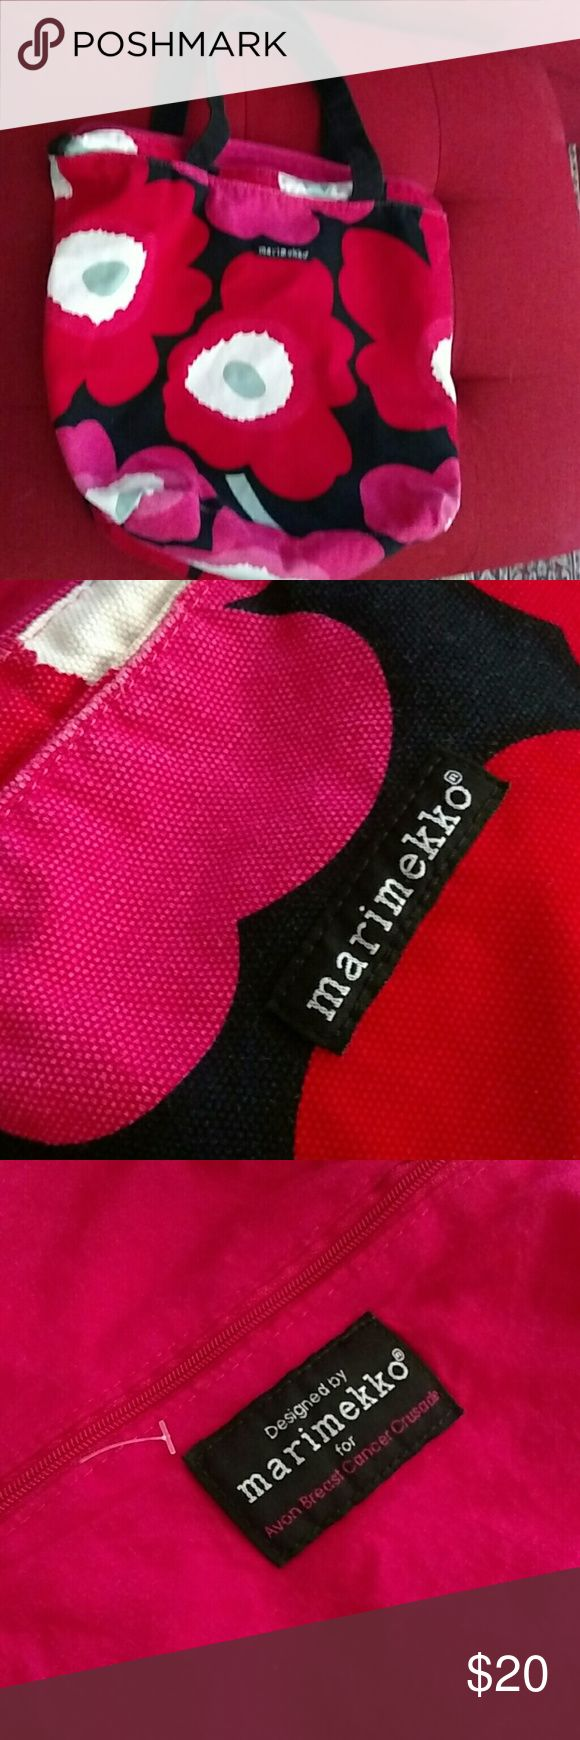 Marimekko avon breast cancer tote floral bag light Lightly used and freshly washed. Very clean Marimekko Bags